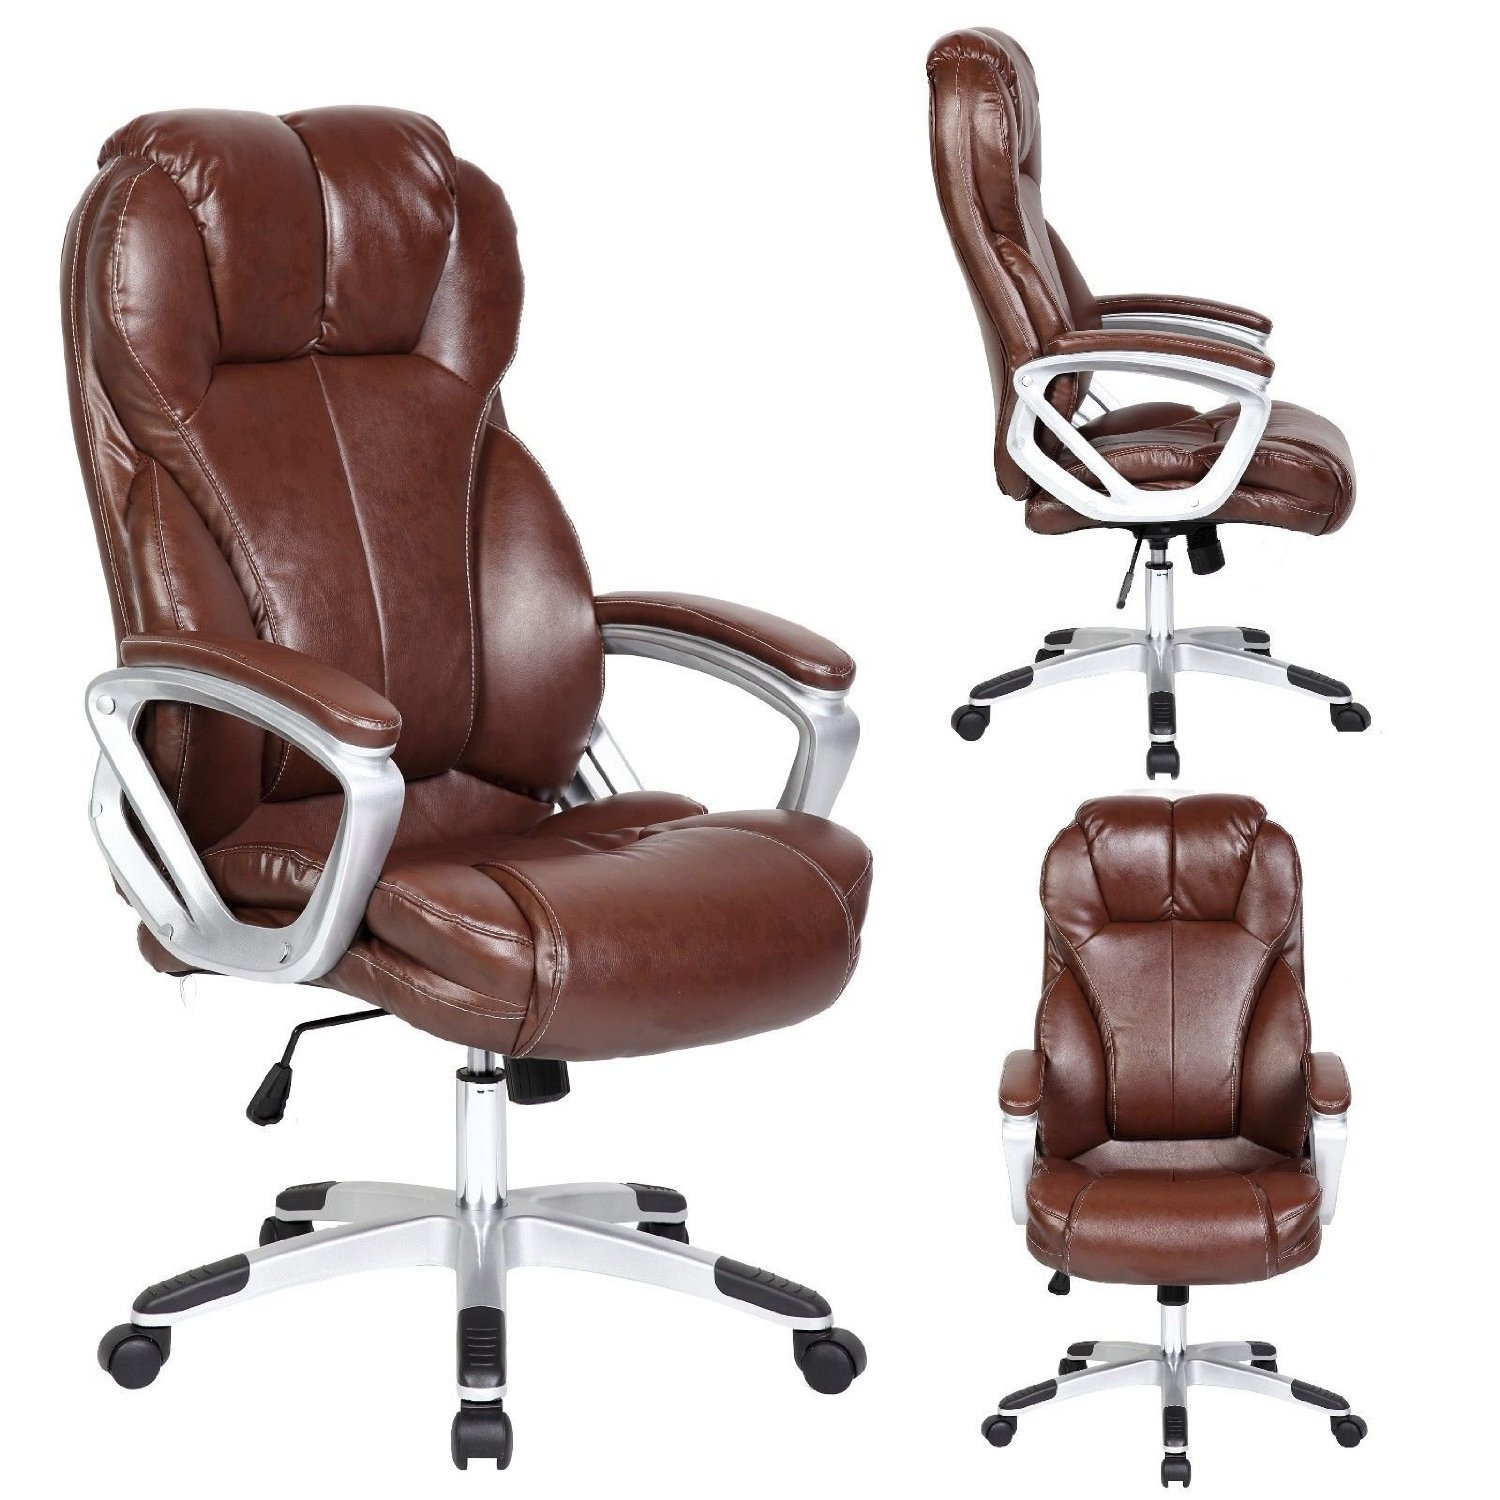 desk chair brown leather inexpensive dining room chairs 3 best affordable office under 100 homesfeed